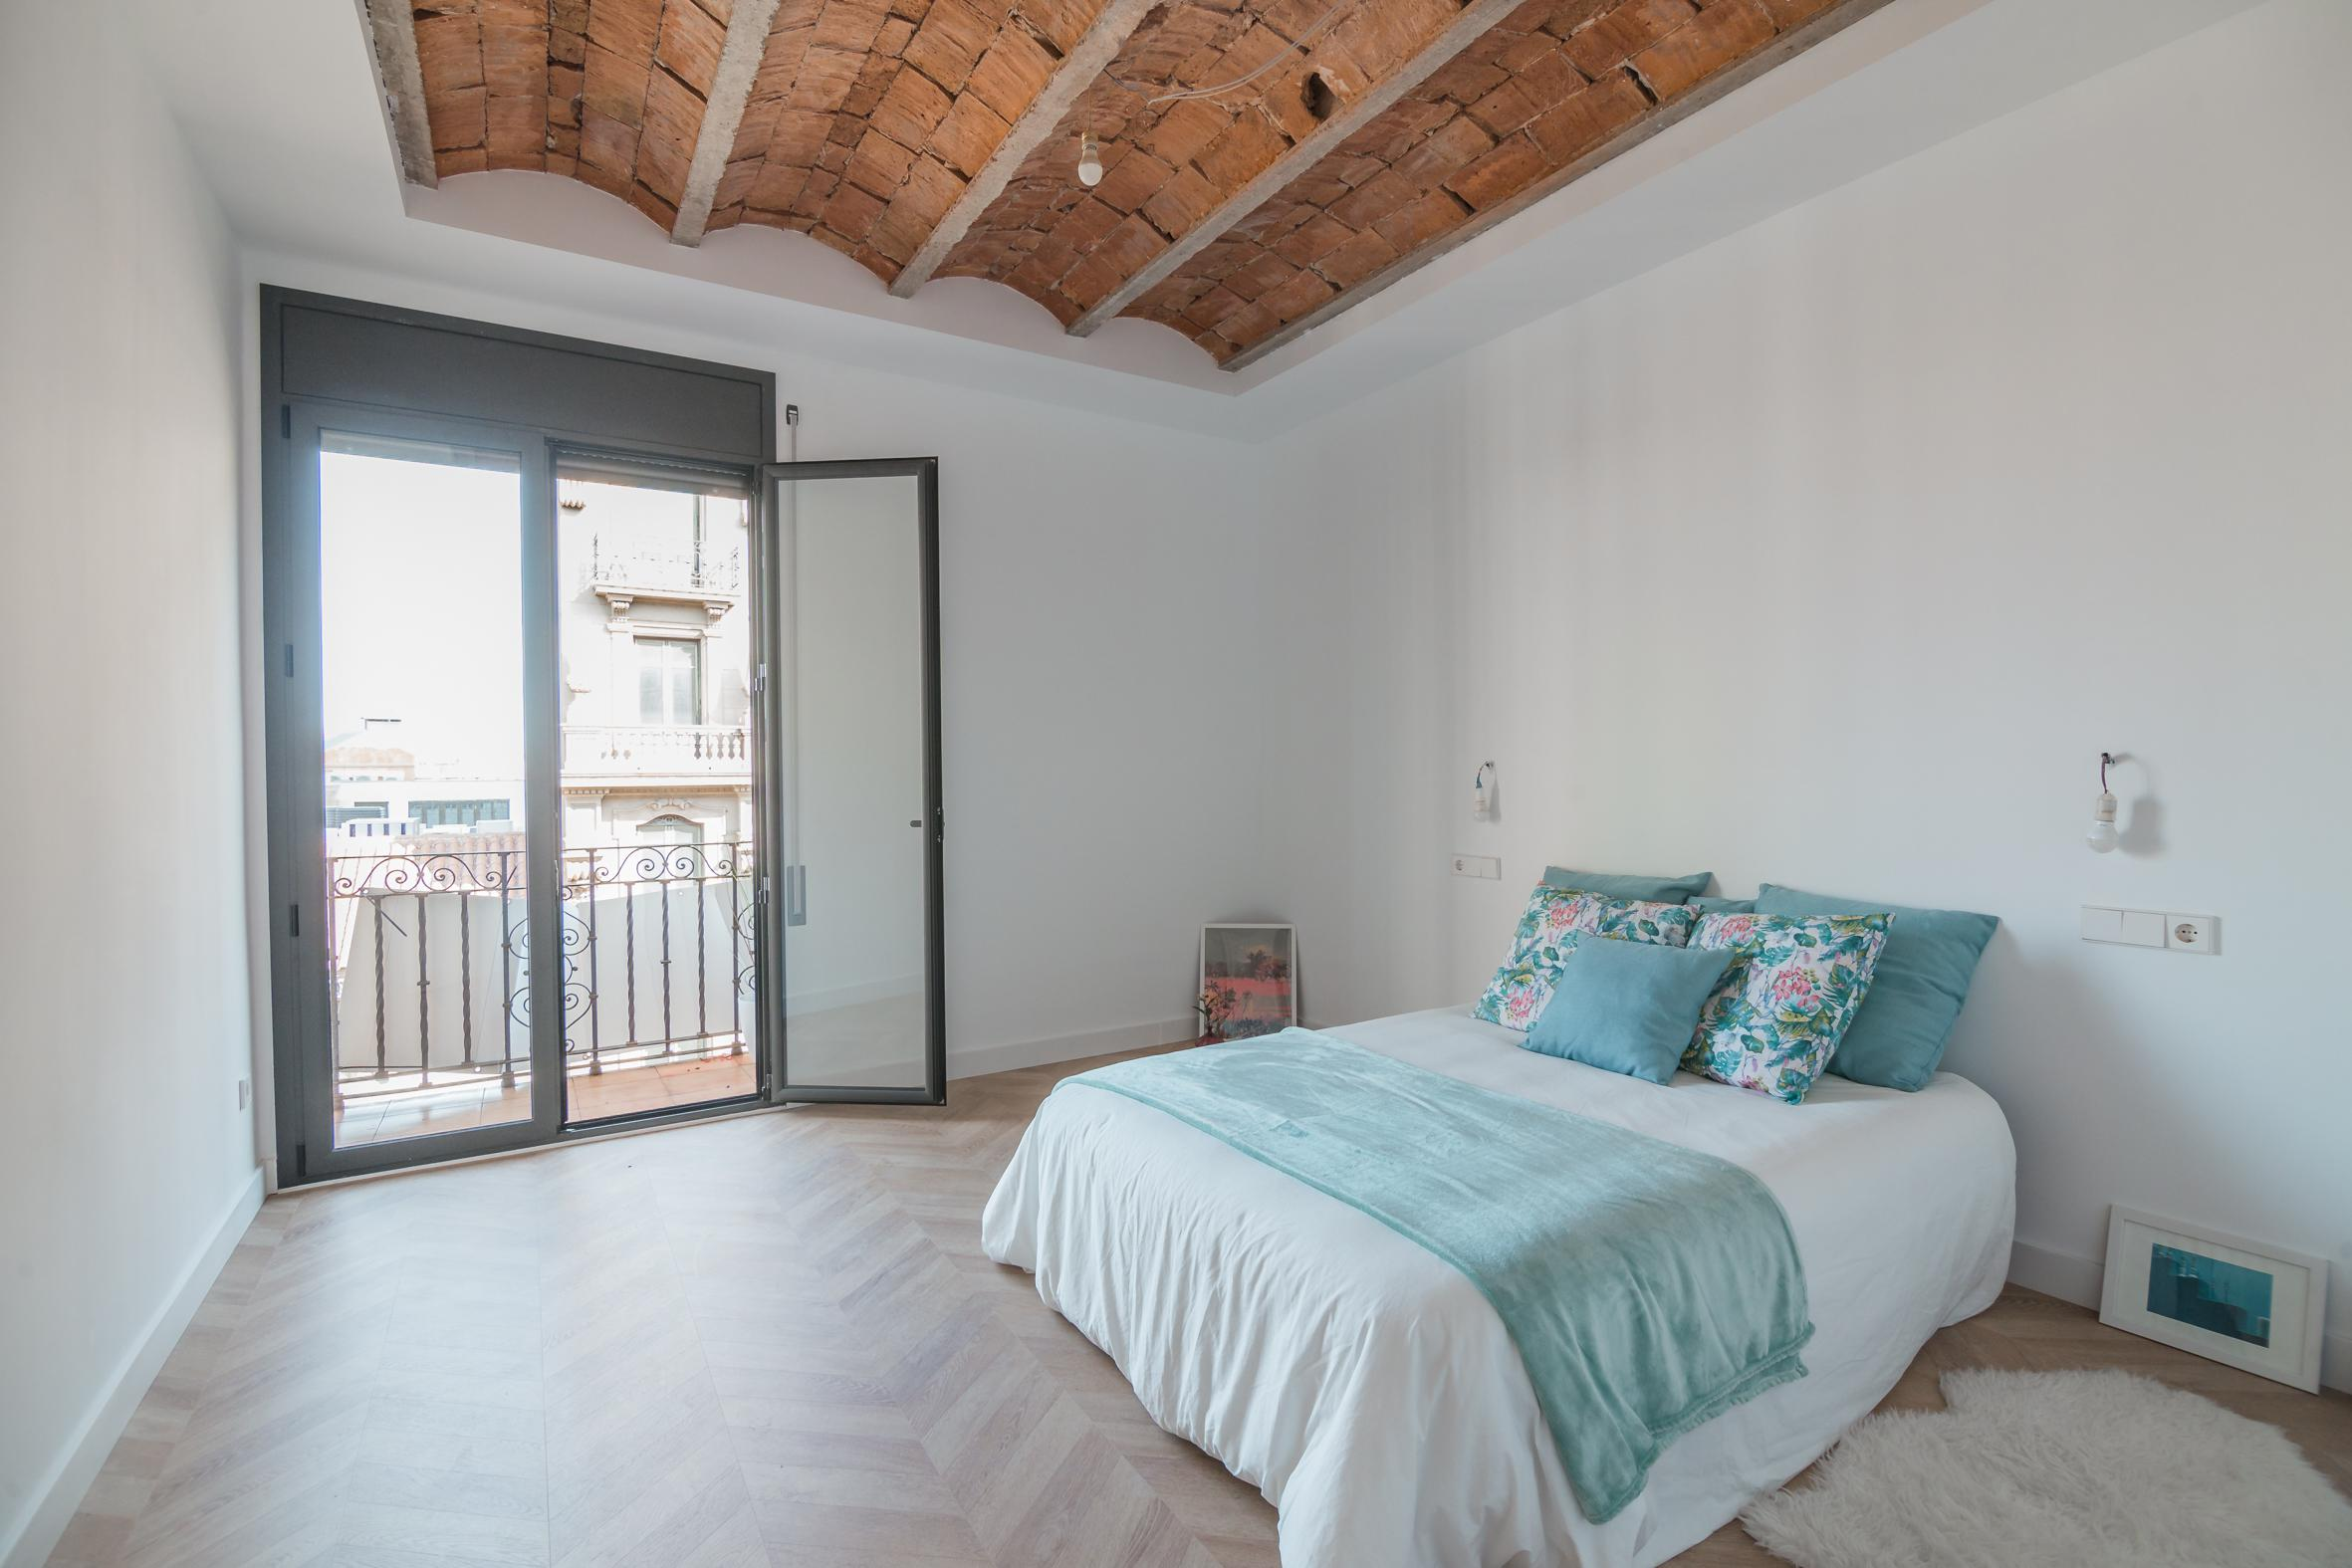 244010 Flat for sale in Ciutat Vella, Barri Gótic 14